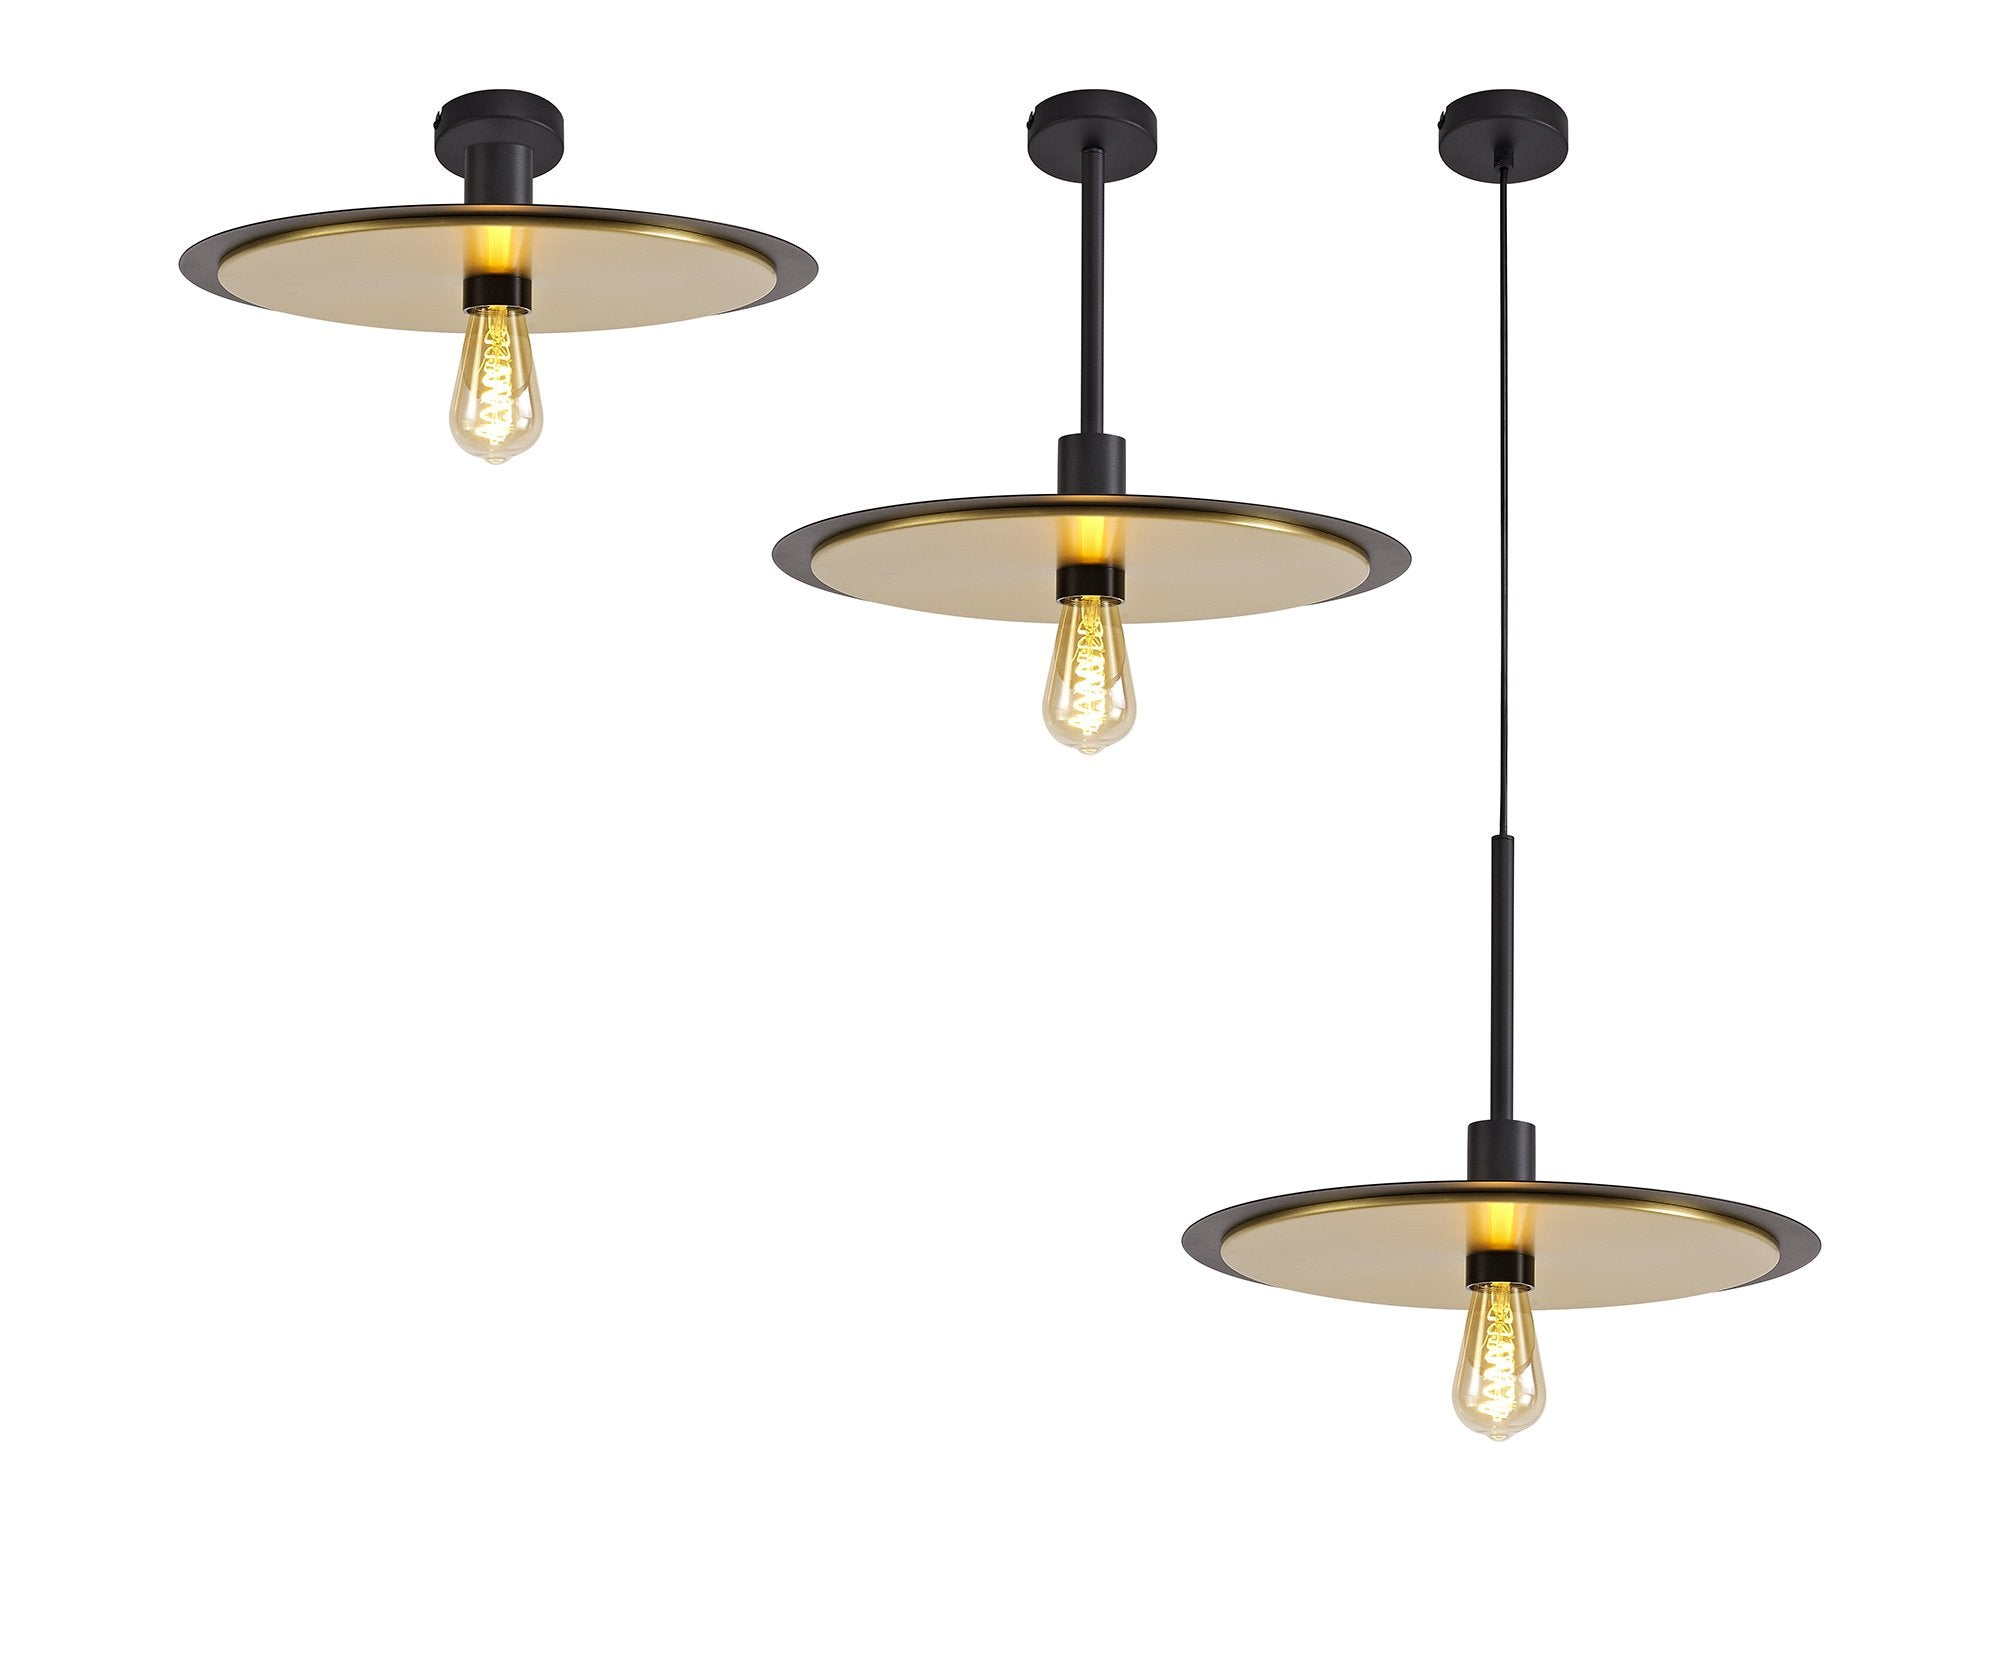 MEMPHIS Single 3 In1 Ceiling Flush, Semi-Fush & Pendant Light, 1 Light Adjustable E27, Black/Gold (2LT181A)